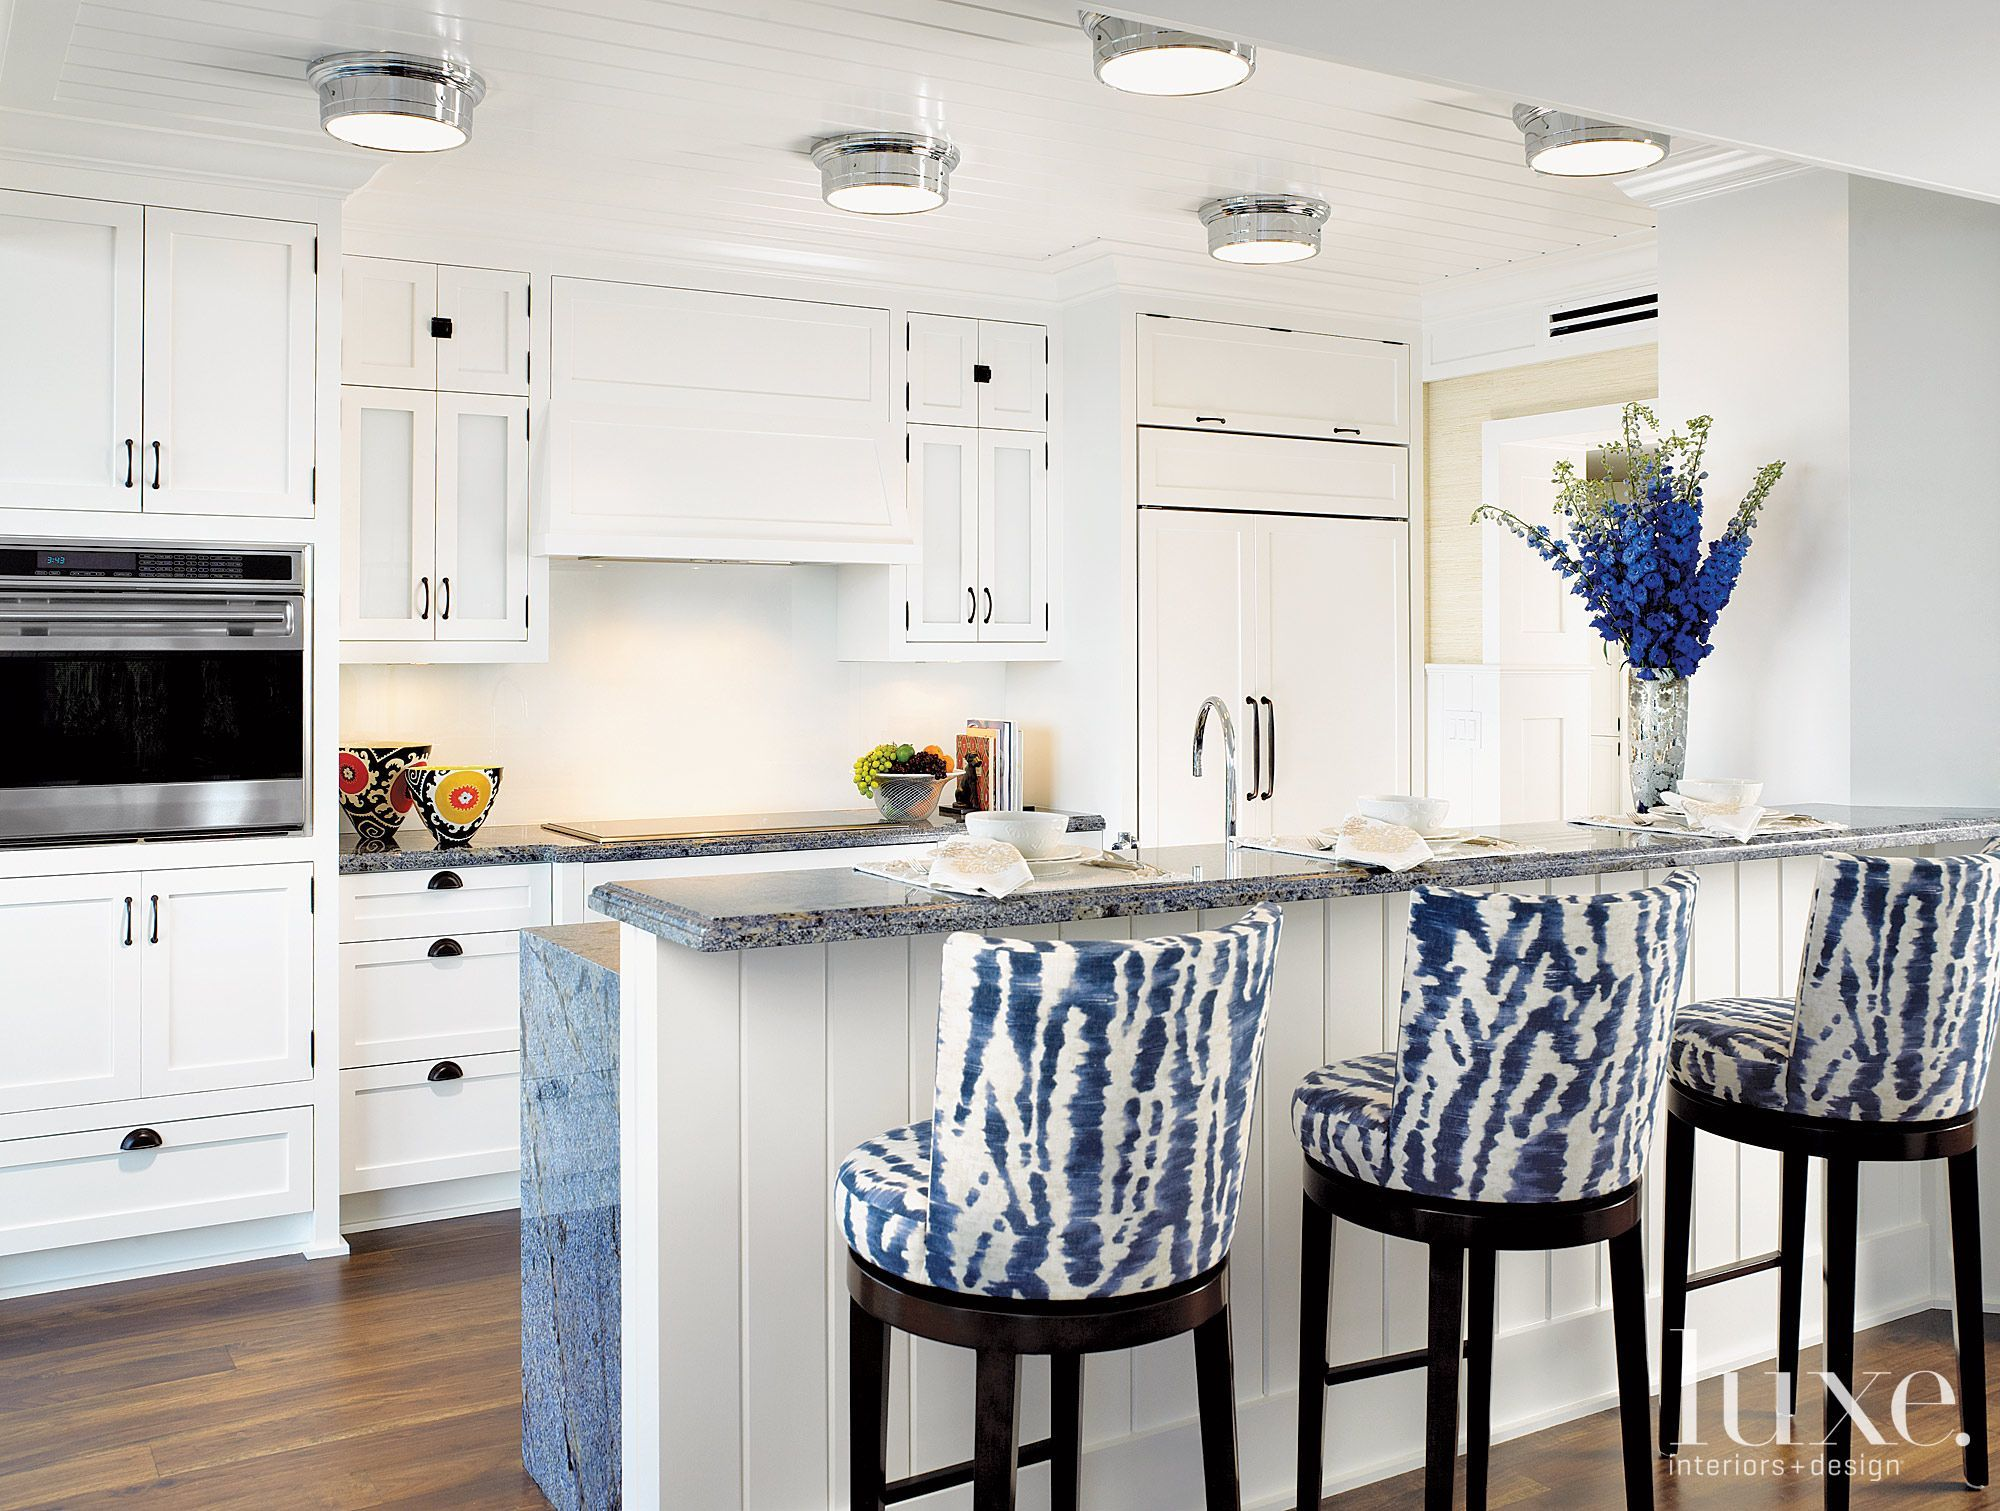 Two slabs of marble were bookended to create the long island large